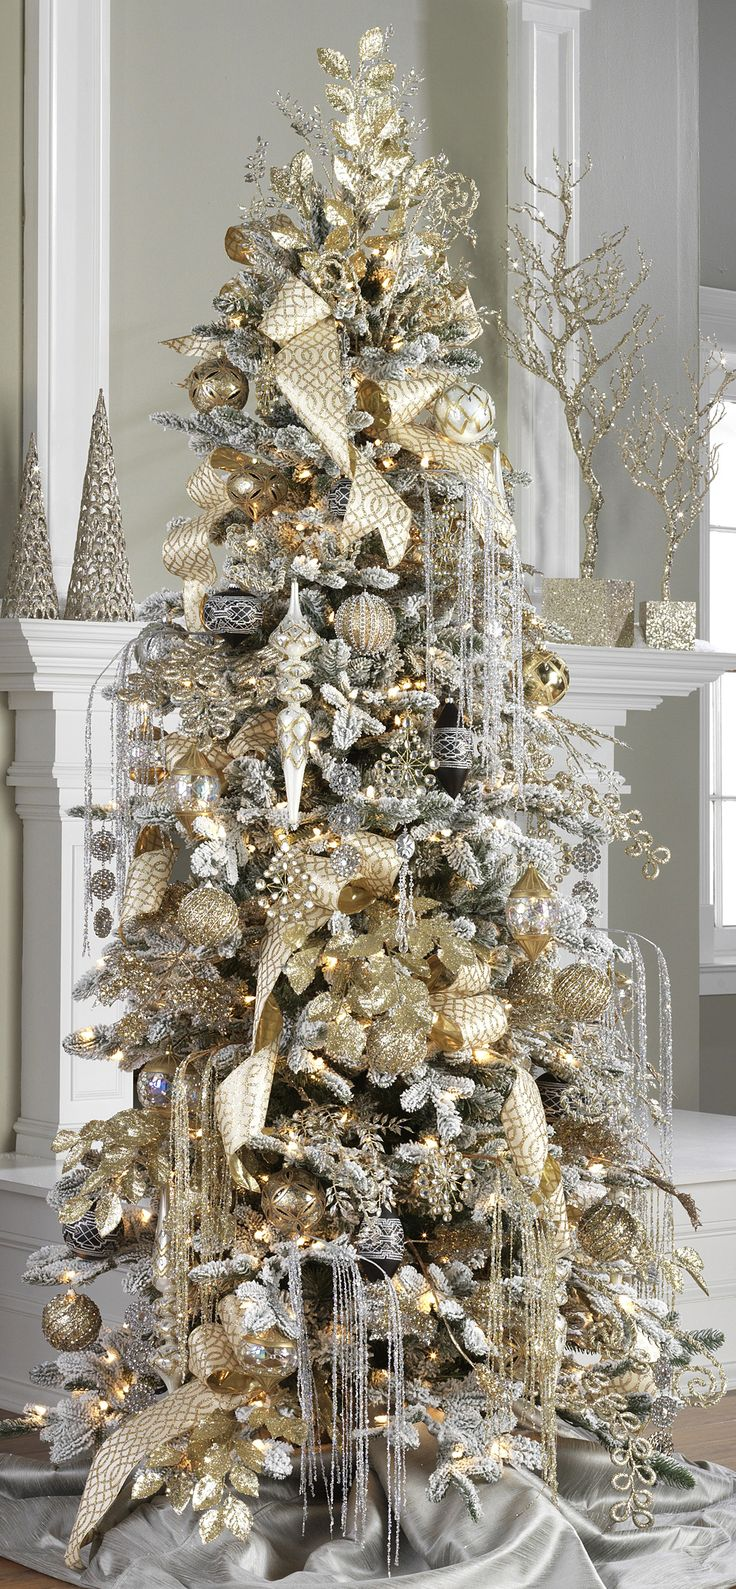 Best 25 Elegant Christmas Trees Ideas Only On Pinterest